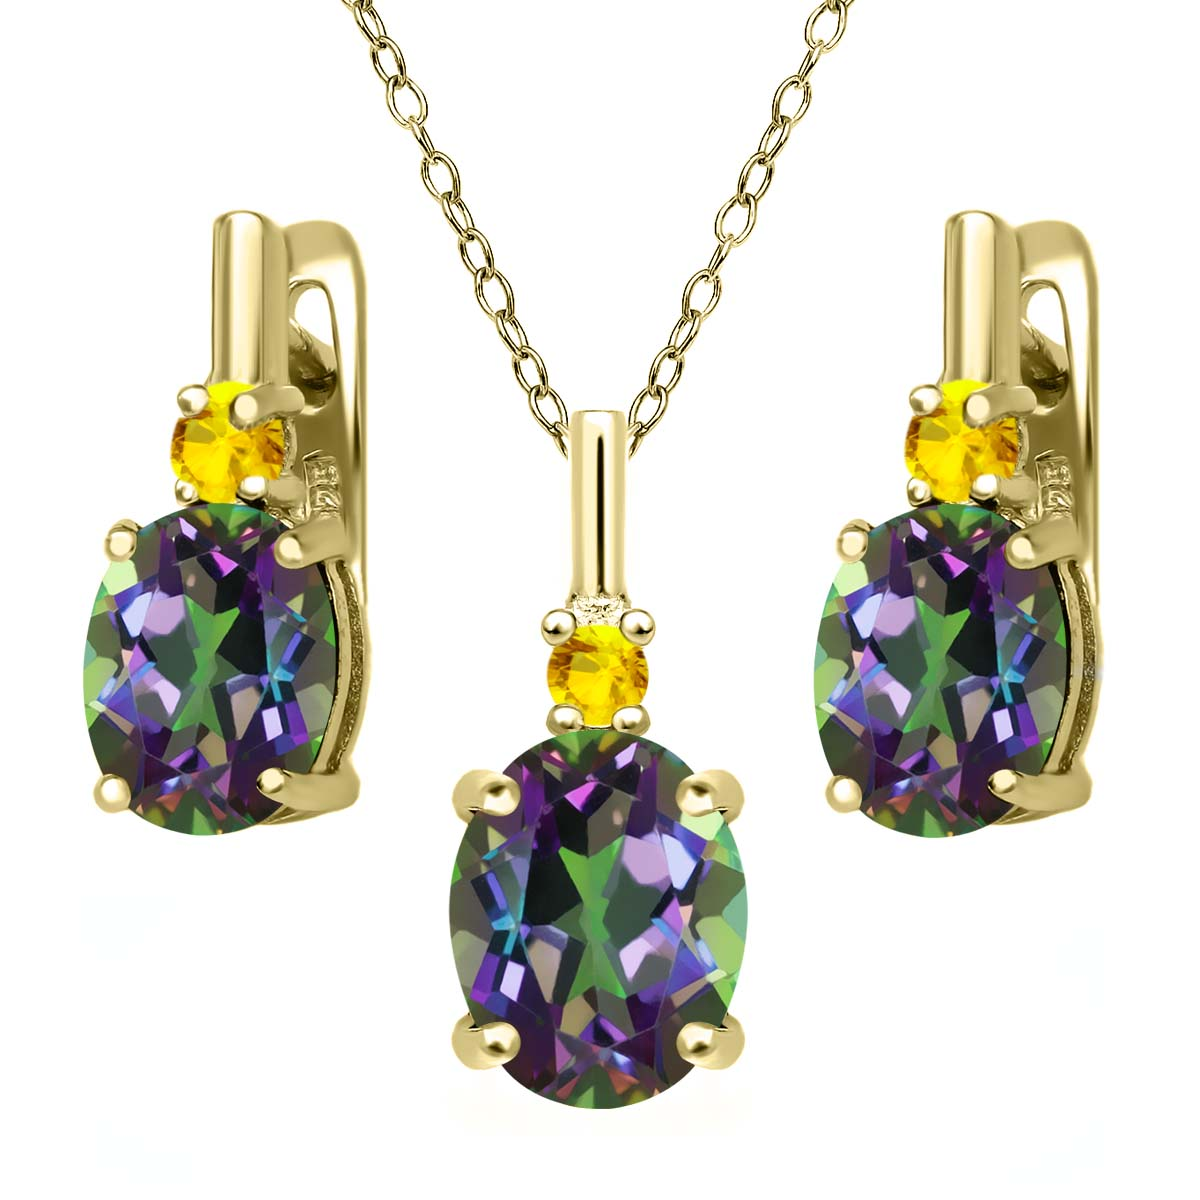 6.99 Ct Green Mystic Topaz Yellow Sapphire 18K Yellow Gold Plated Silver Pendant Earrings Set by